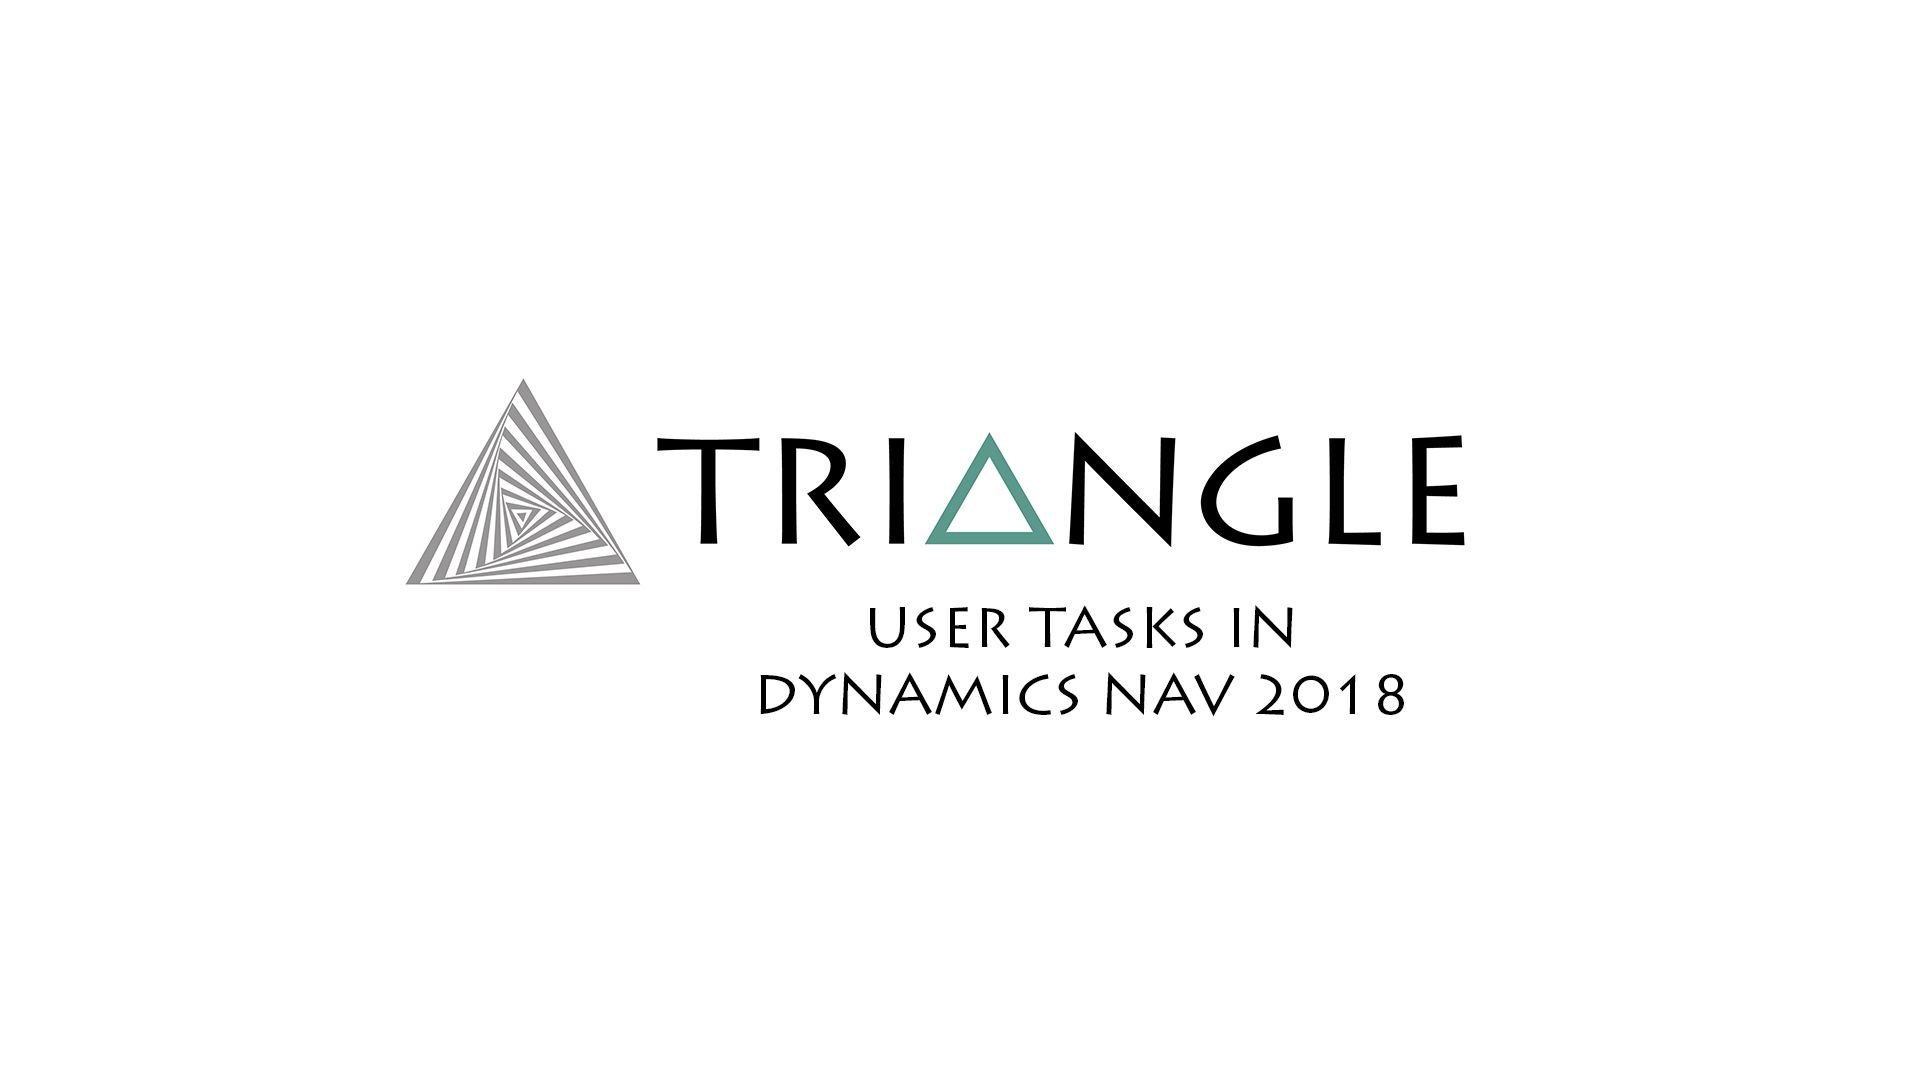 user tasks Dynamics NAV 2018